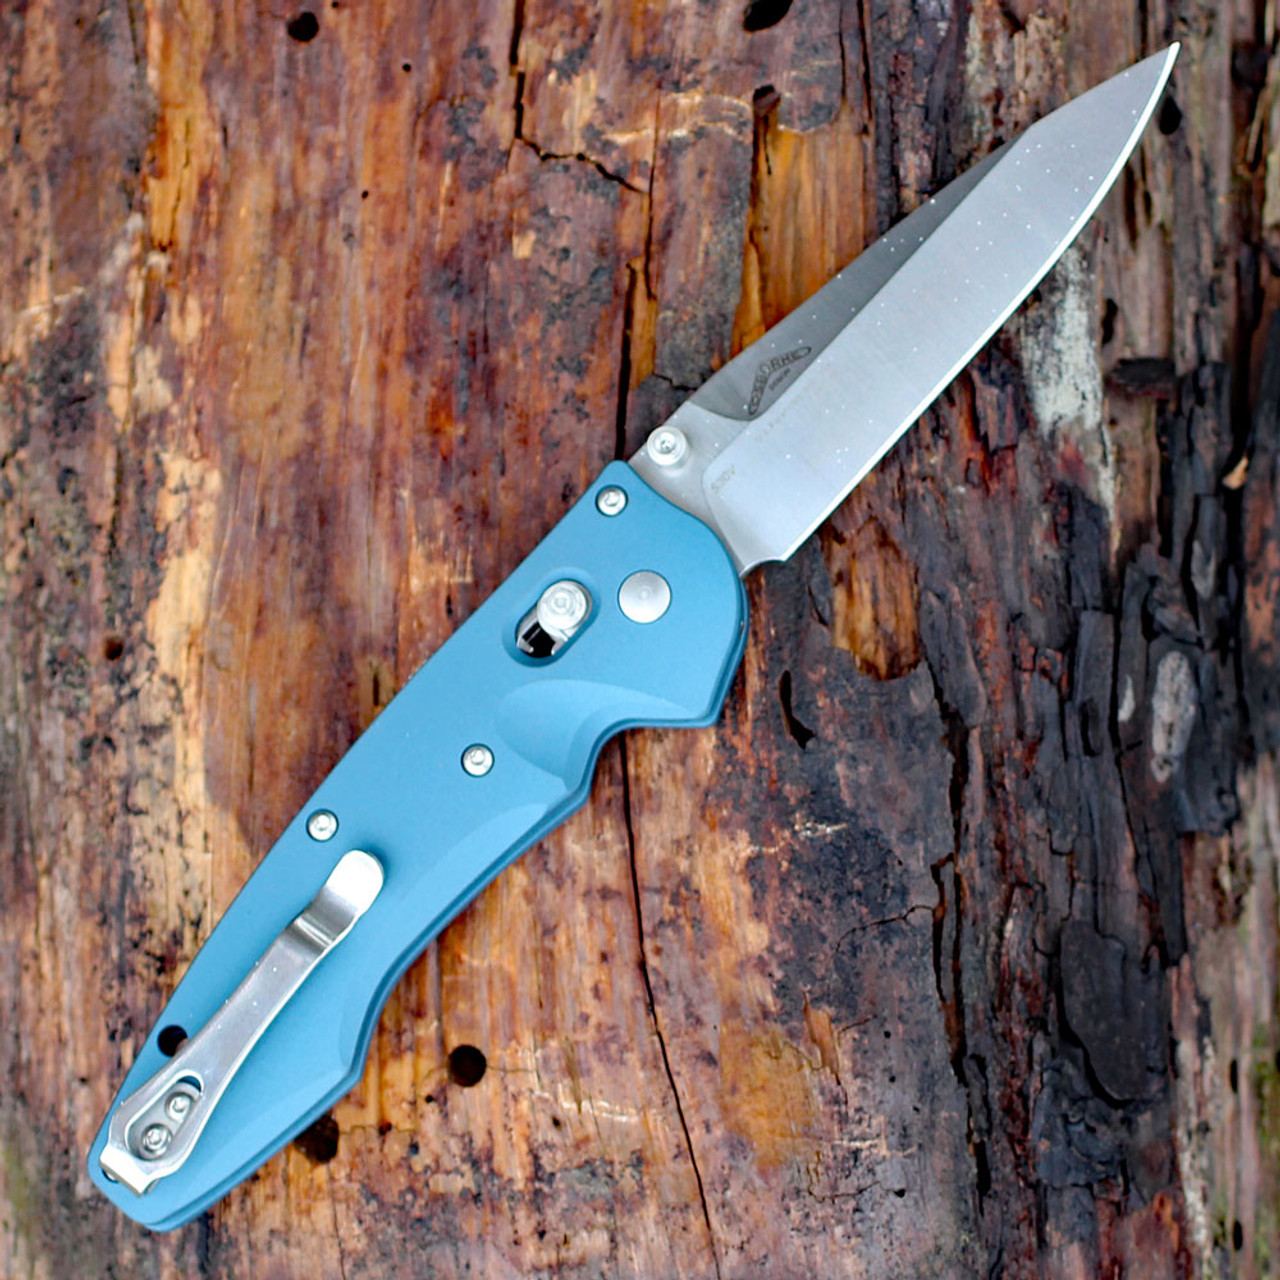 Benchmade Emissary Axis-Assist Folder 477-1, 3.45 in. S30V Stainless Blade, Aqua Handle, Plain Edge